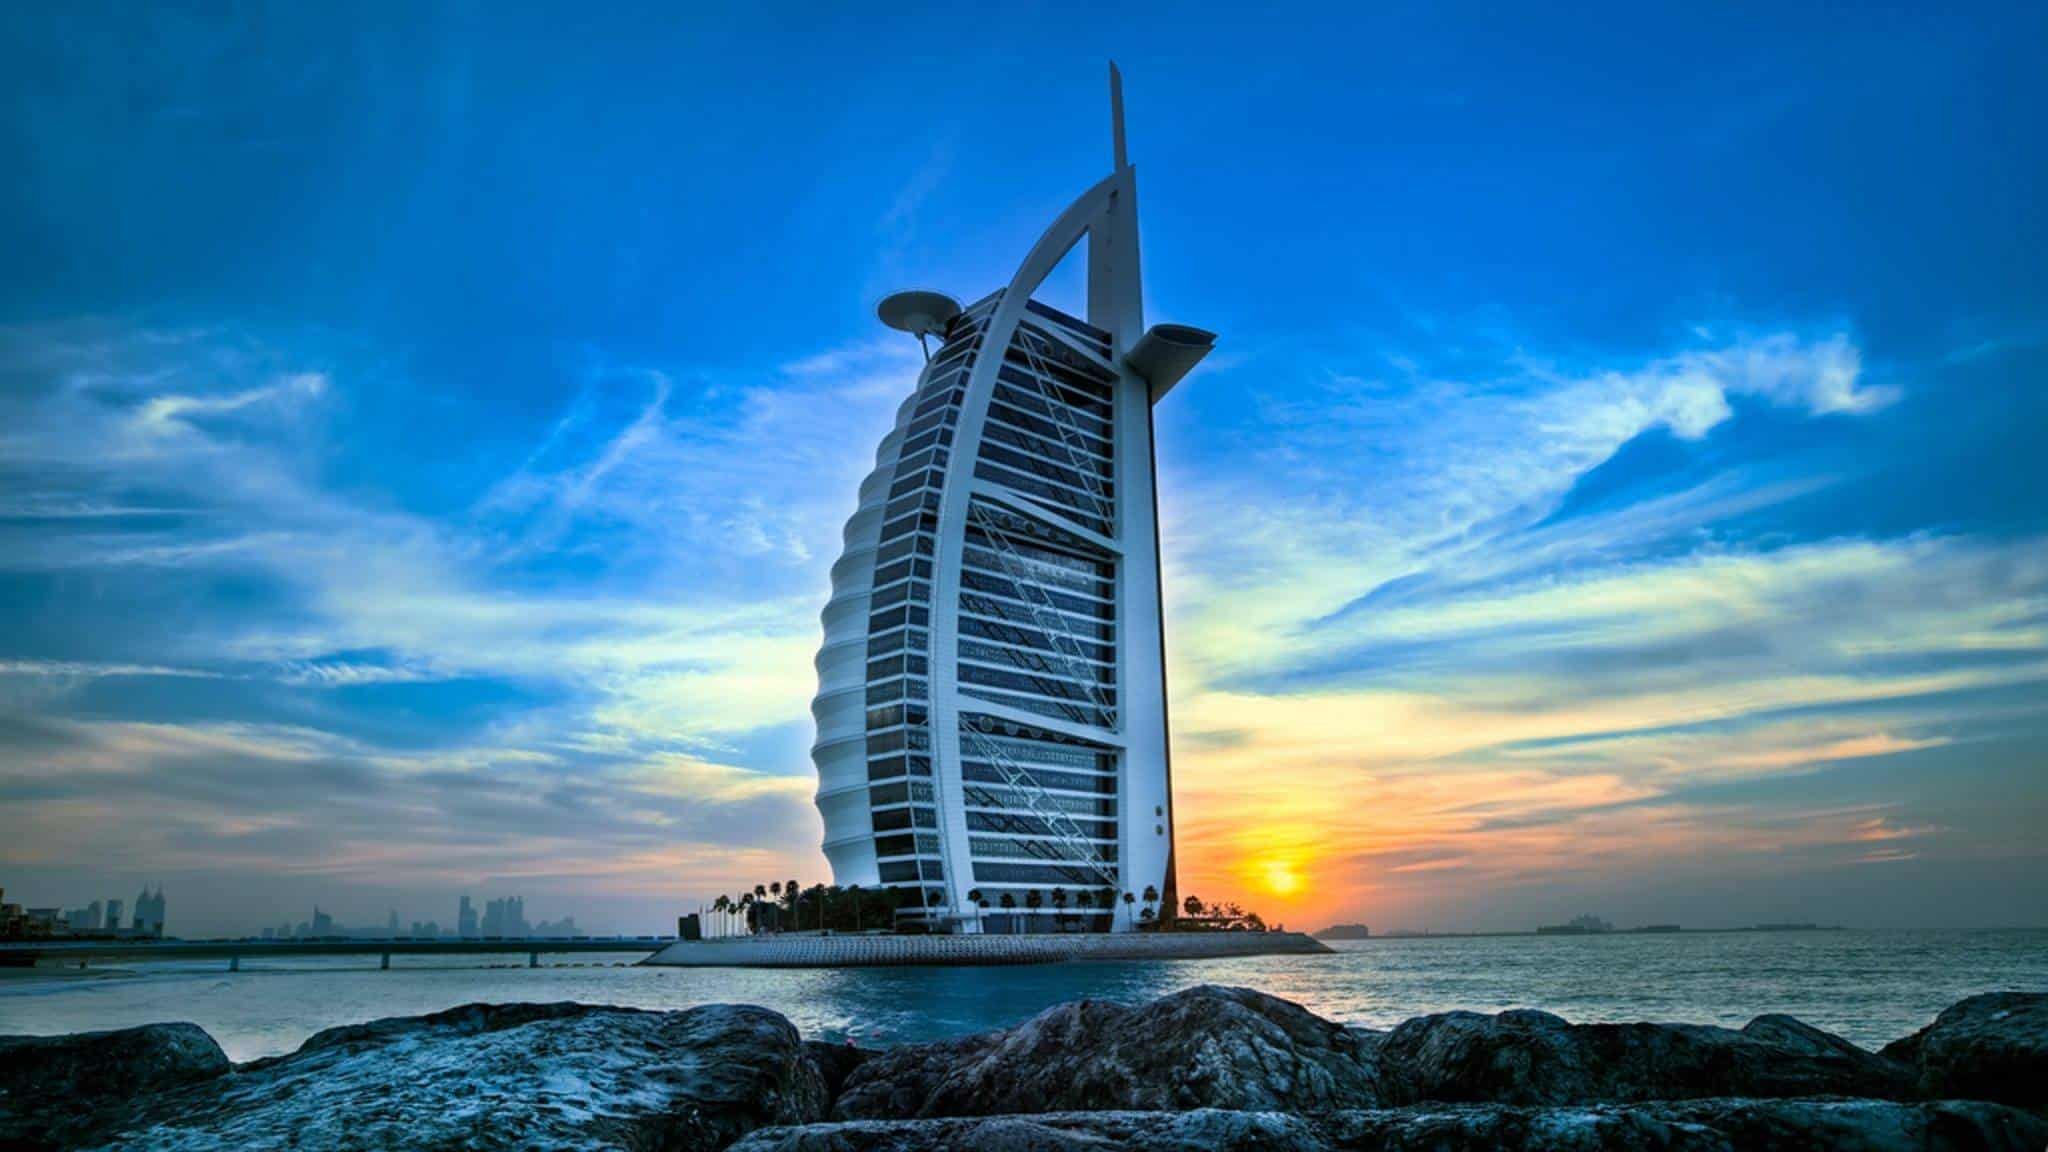 Dubai - the city of rich extravagance